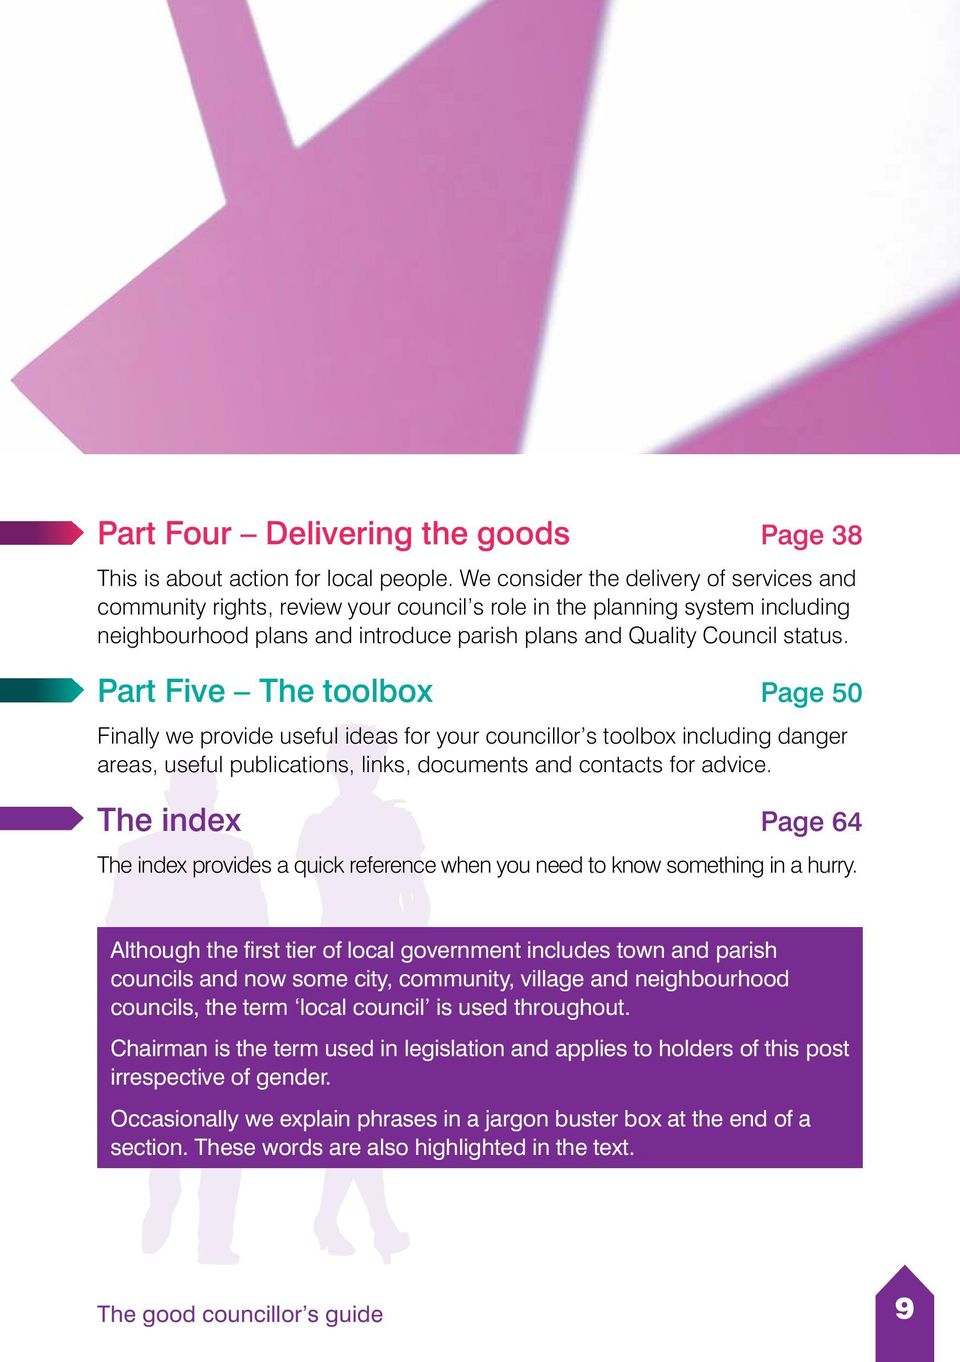 Part Five The toolbox Page 50 Finally we provide useful ideas for your councillor s toolbox including danger areas, useful publications, links, documents and contacts for advice.